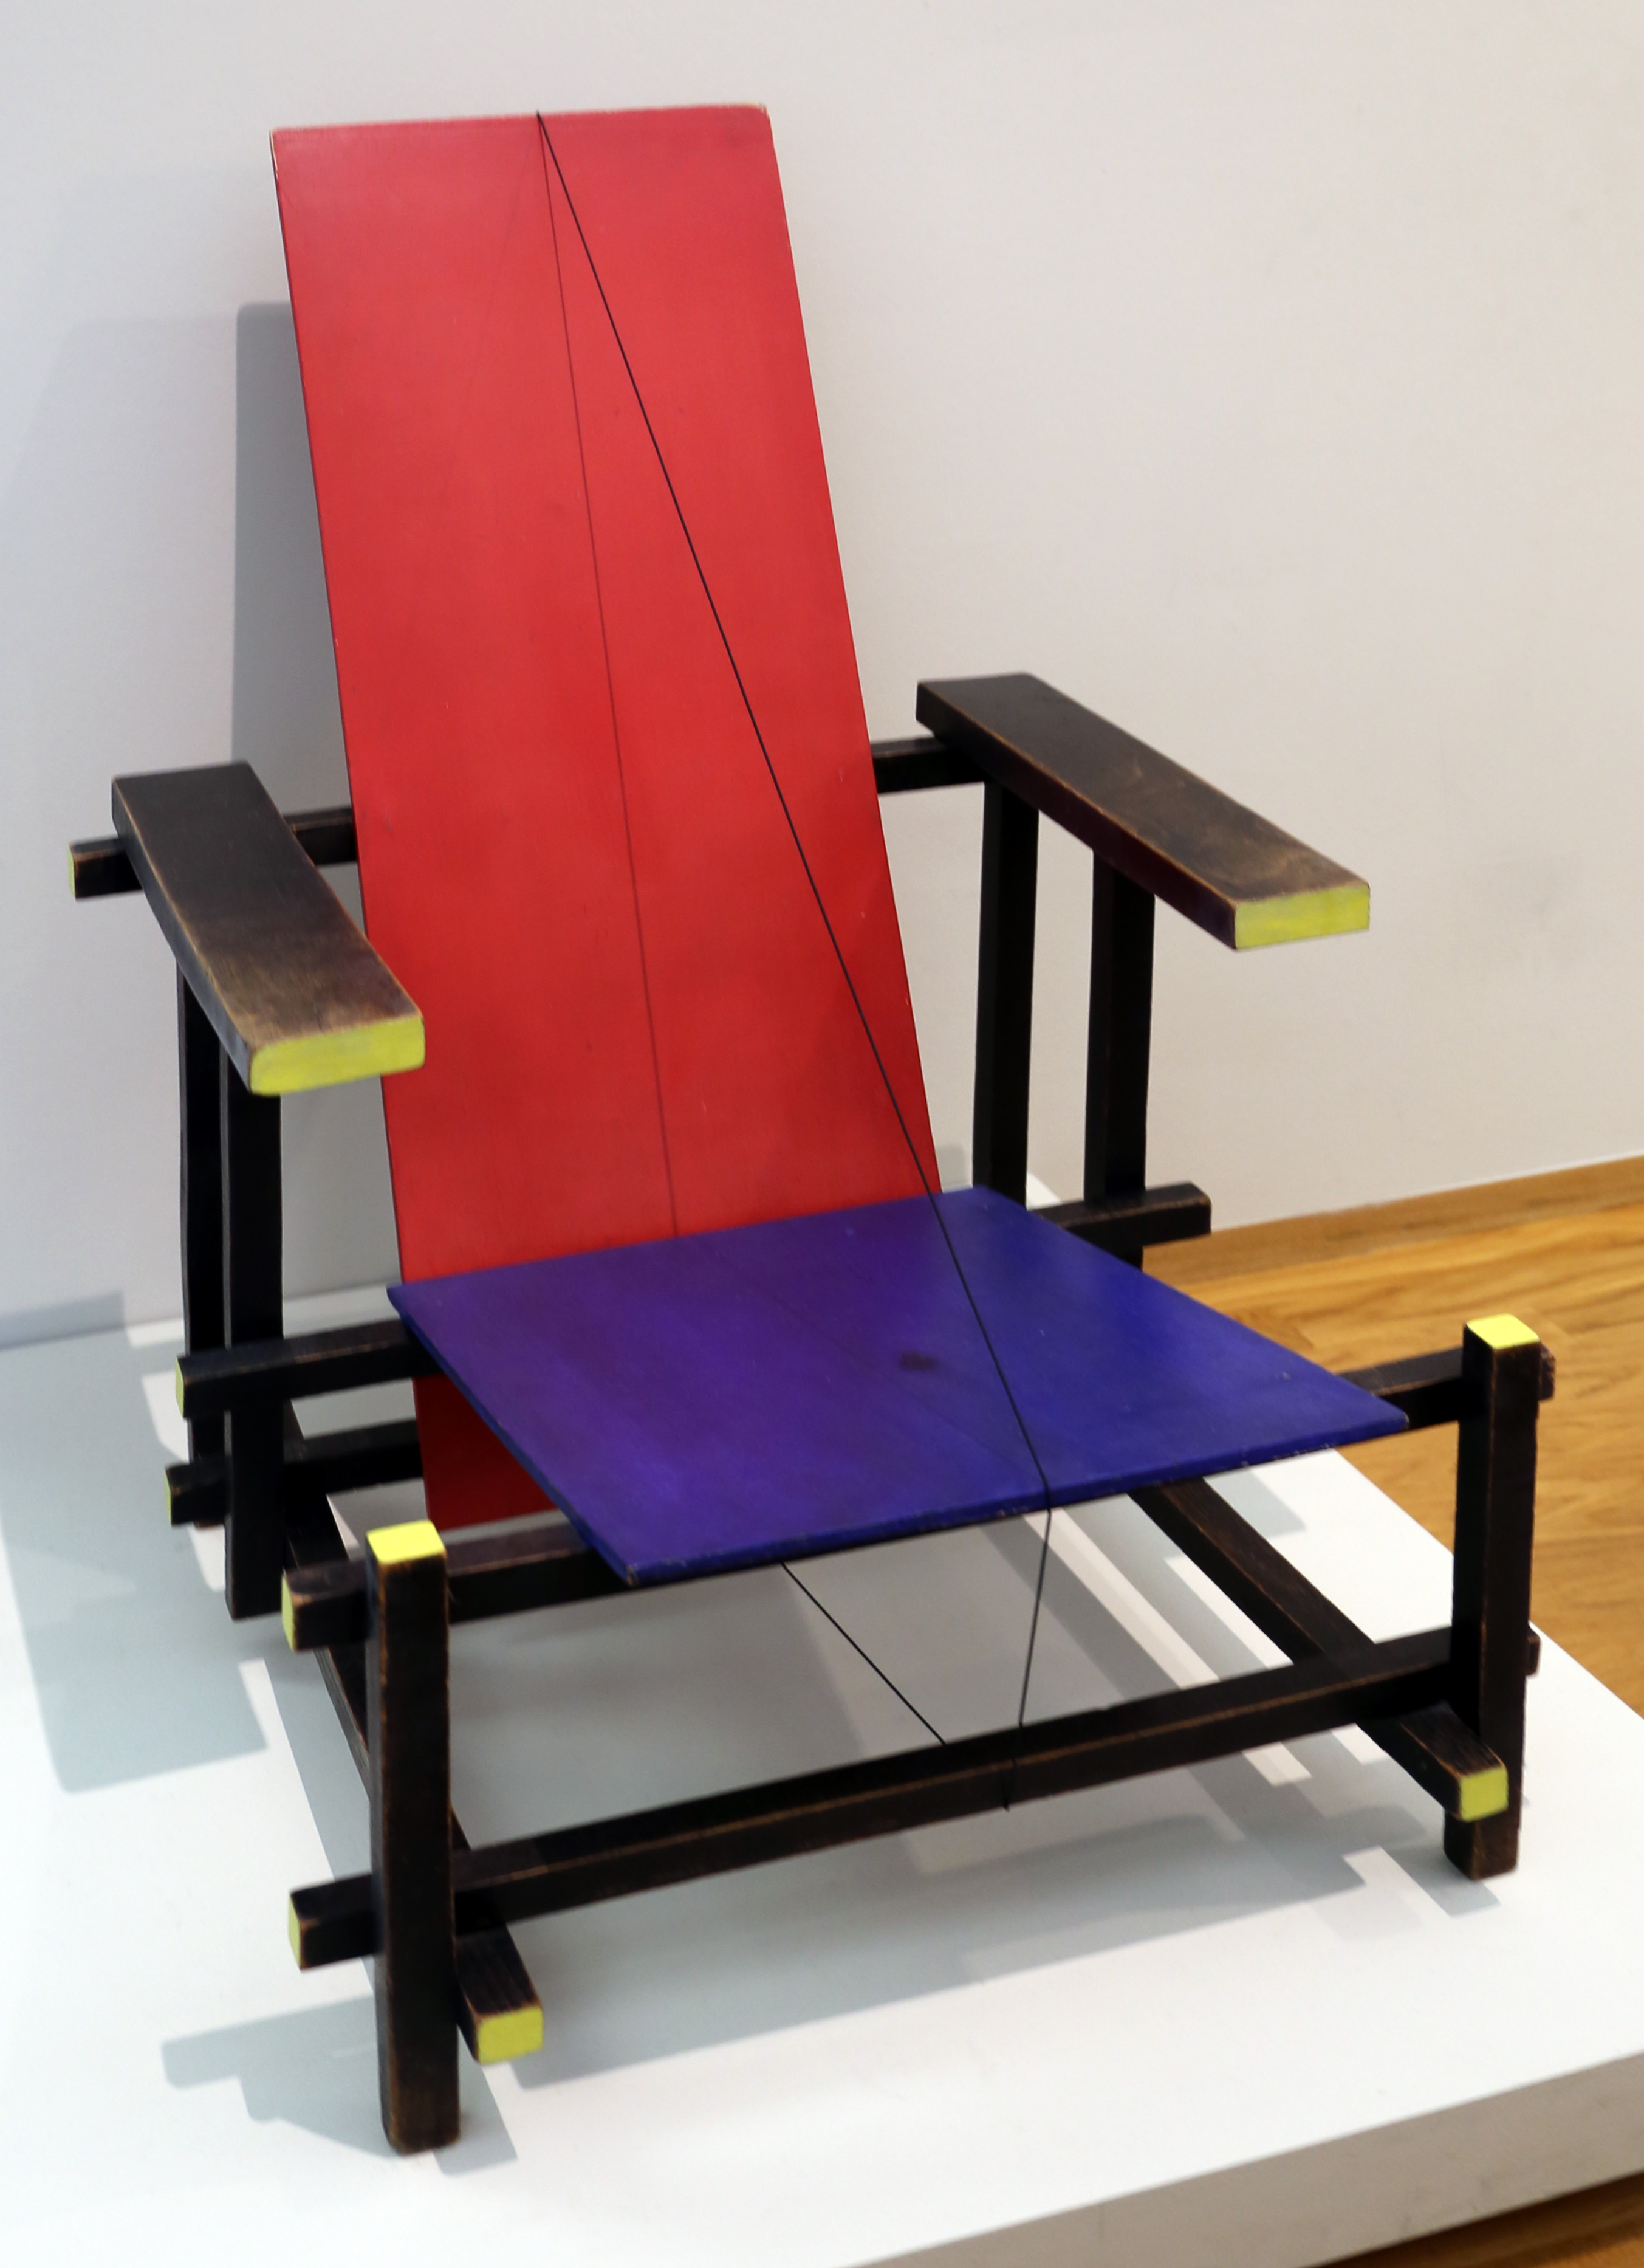 FileGerrit rietveld red and blue chair 1918 1925jpg